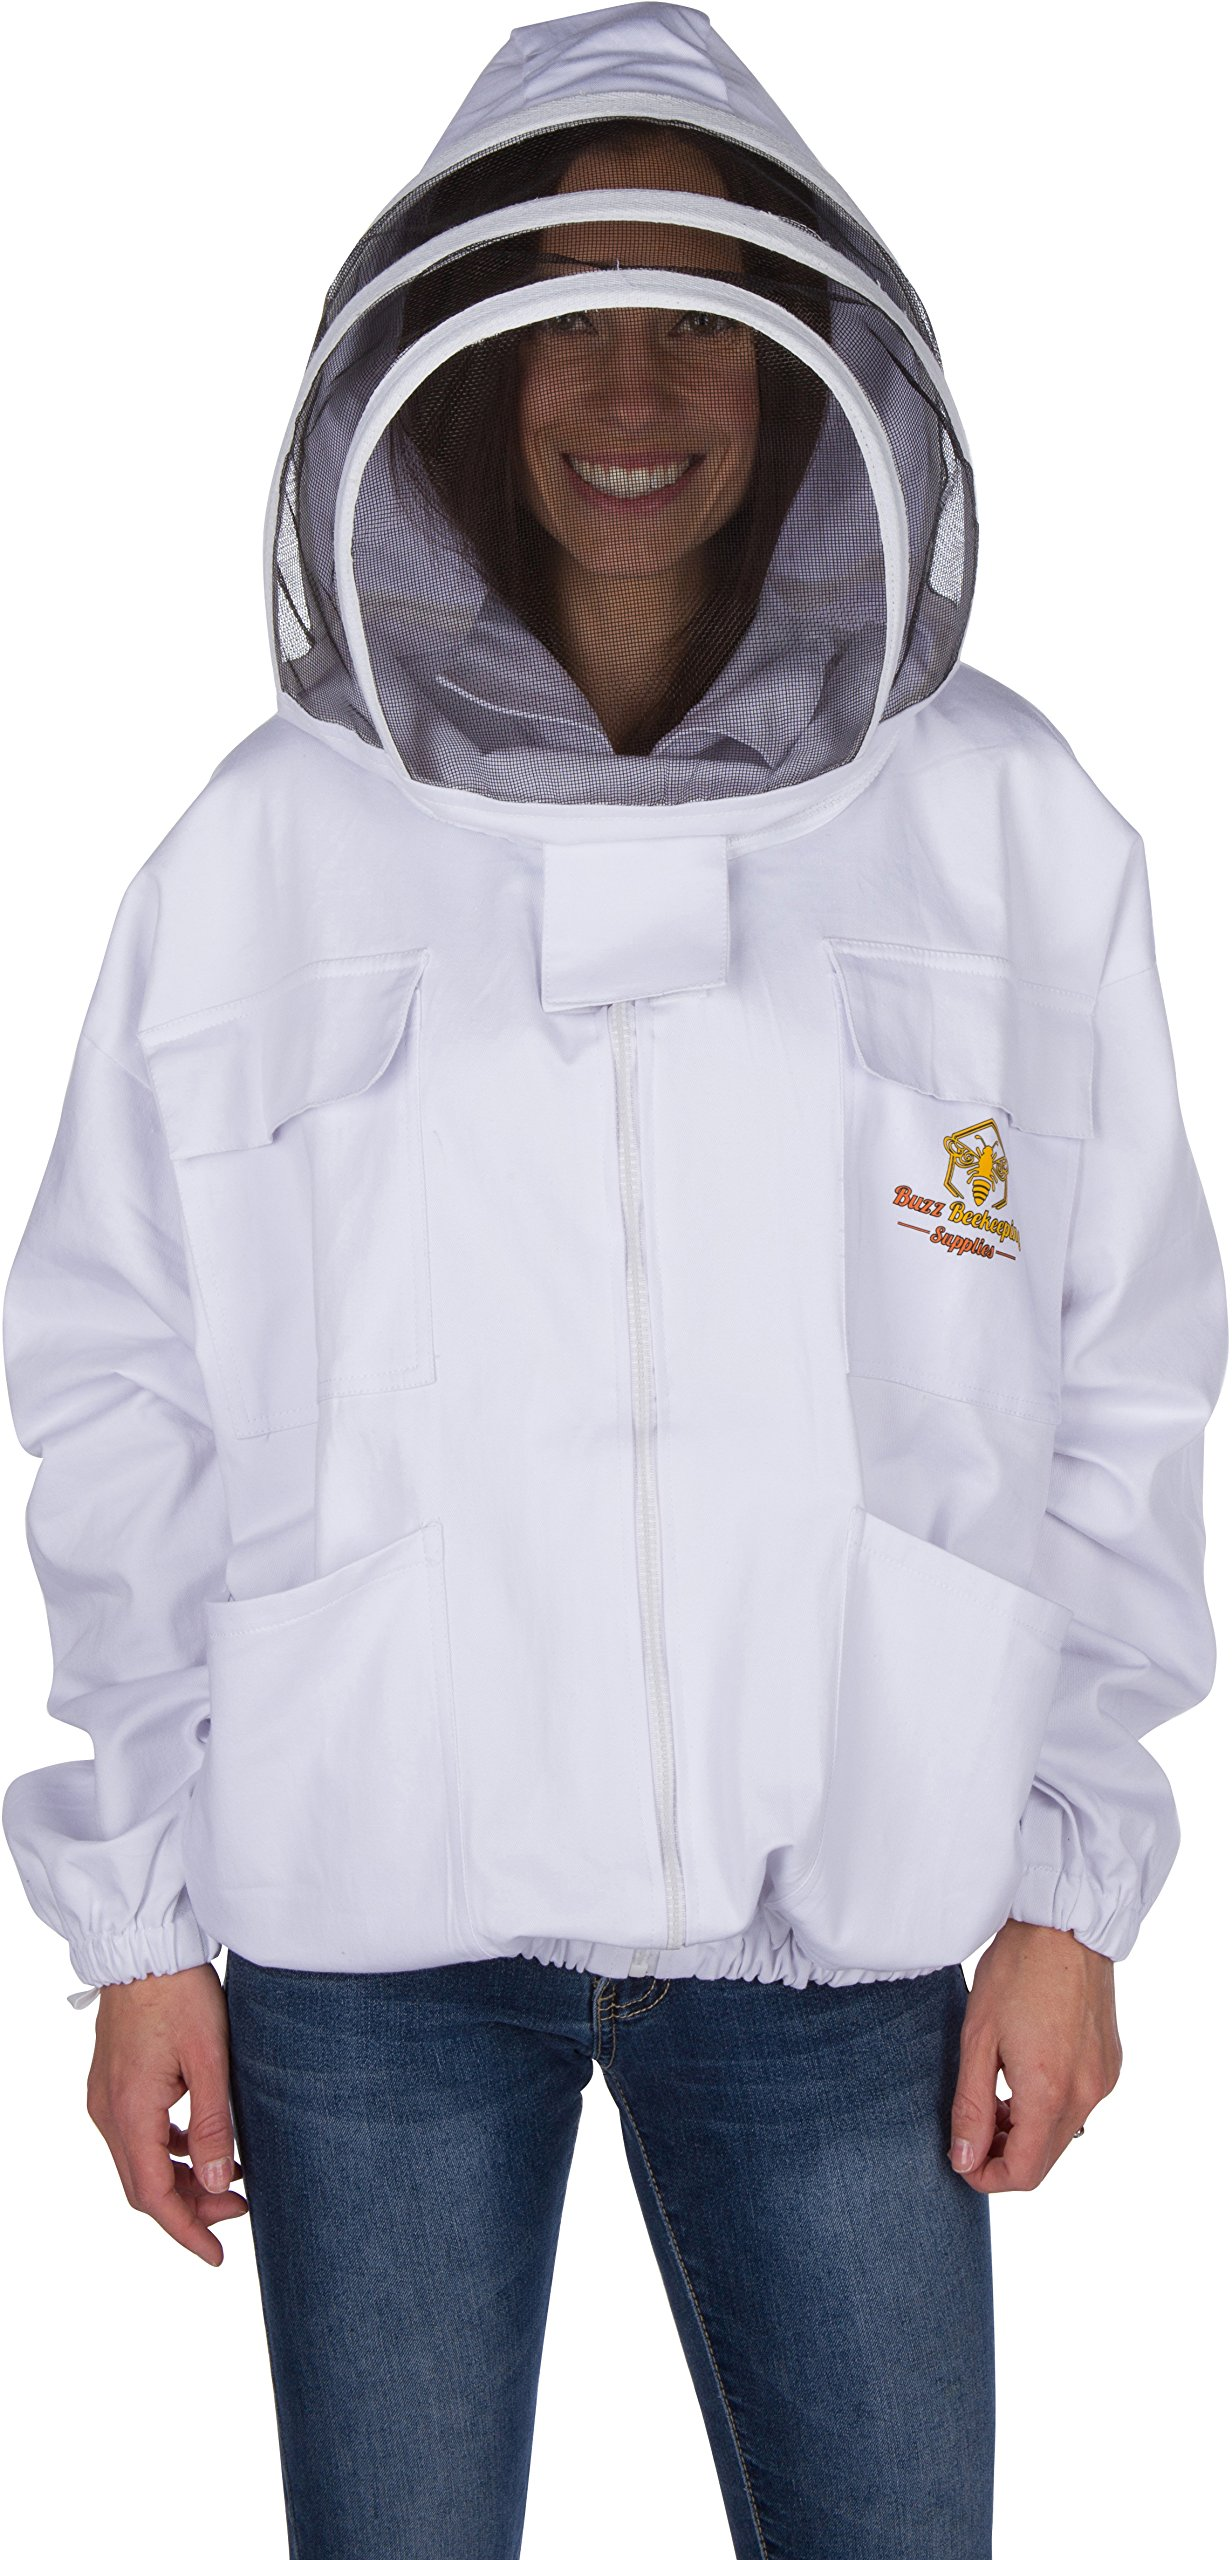 Professional Beekeeping Suit Jacket -for Men and Women (Medium) - Total Protection - Self-Supporting Fencing Veil for Beekeepers - Easily Take On & Off - 6 Pockets - Good for Beginners as well (White)